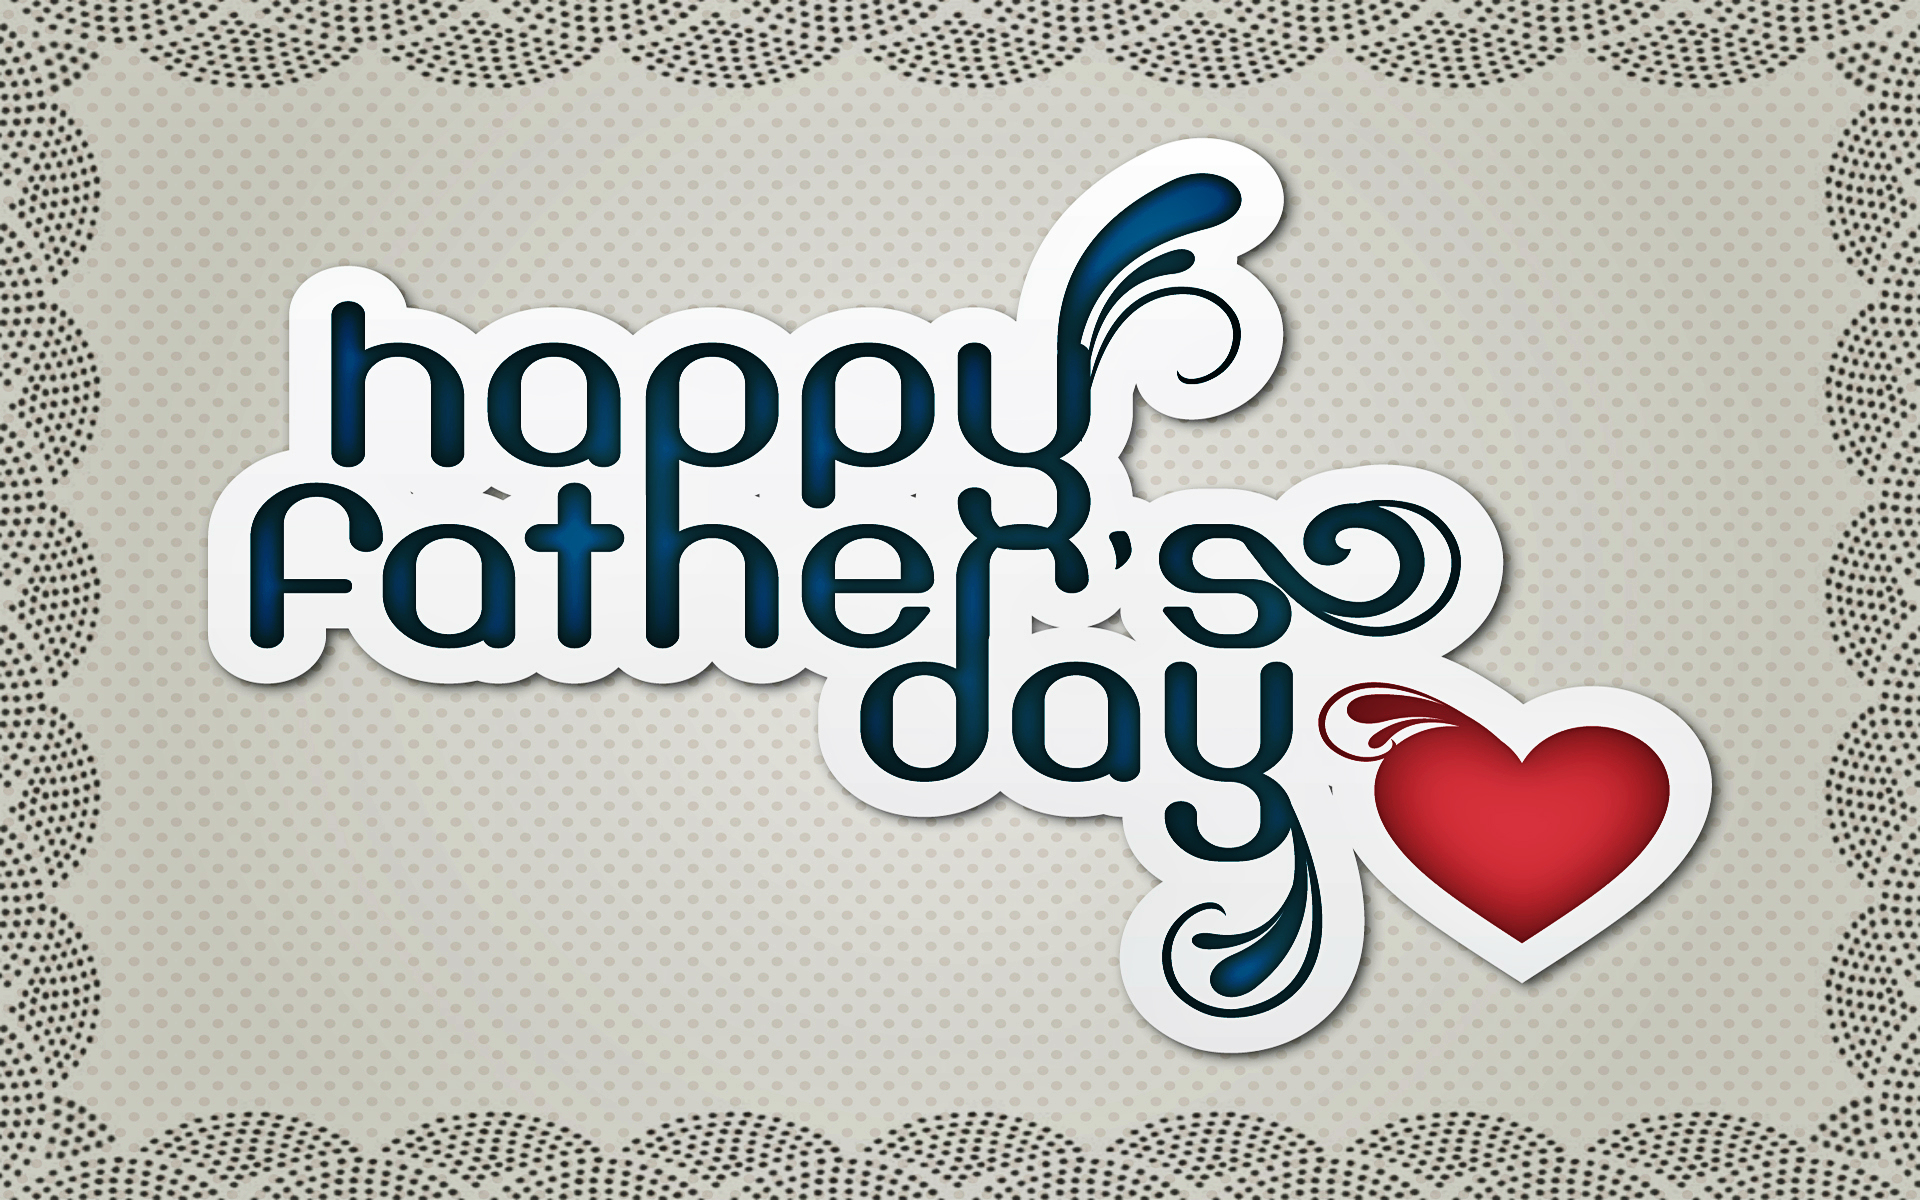 Happy Fathers Day Images 2019 Fathers Day Pictures Photos Pics 1920x1200